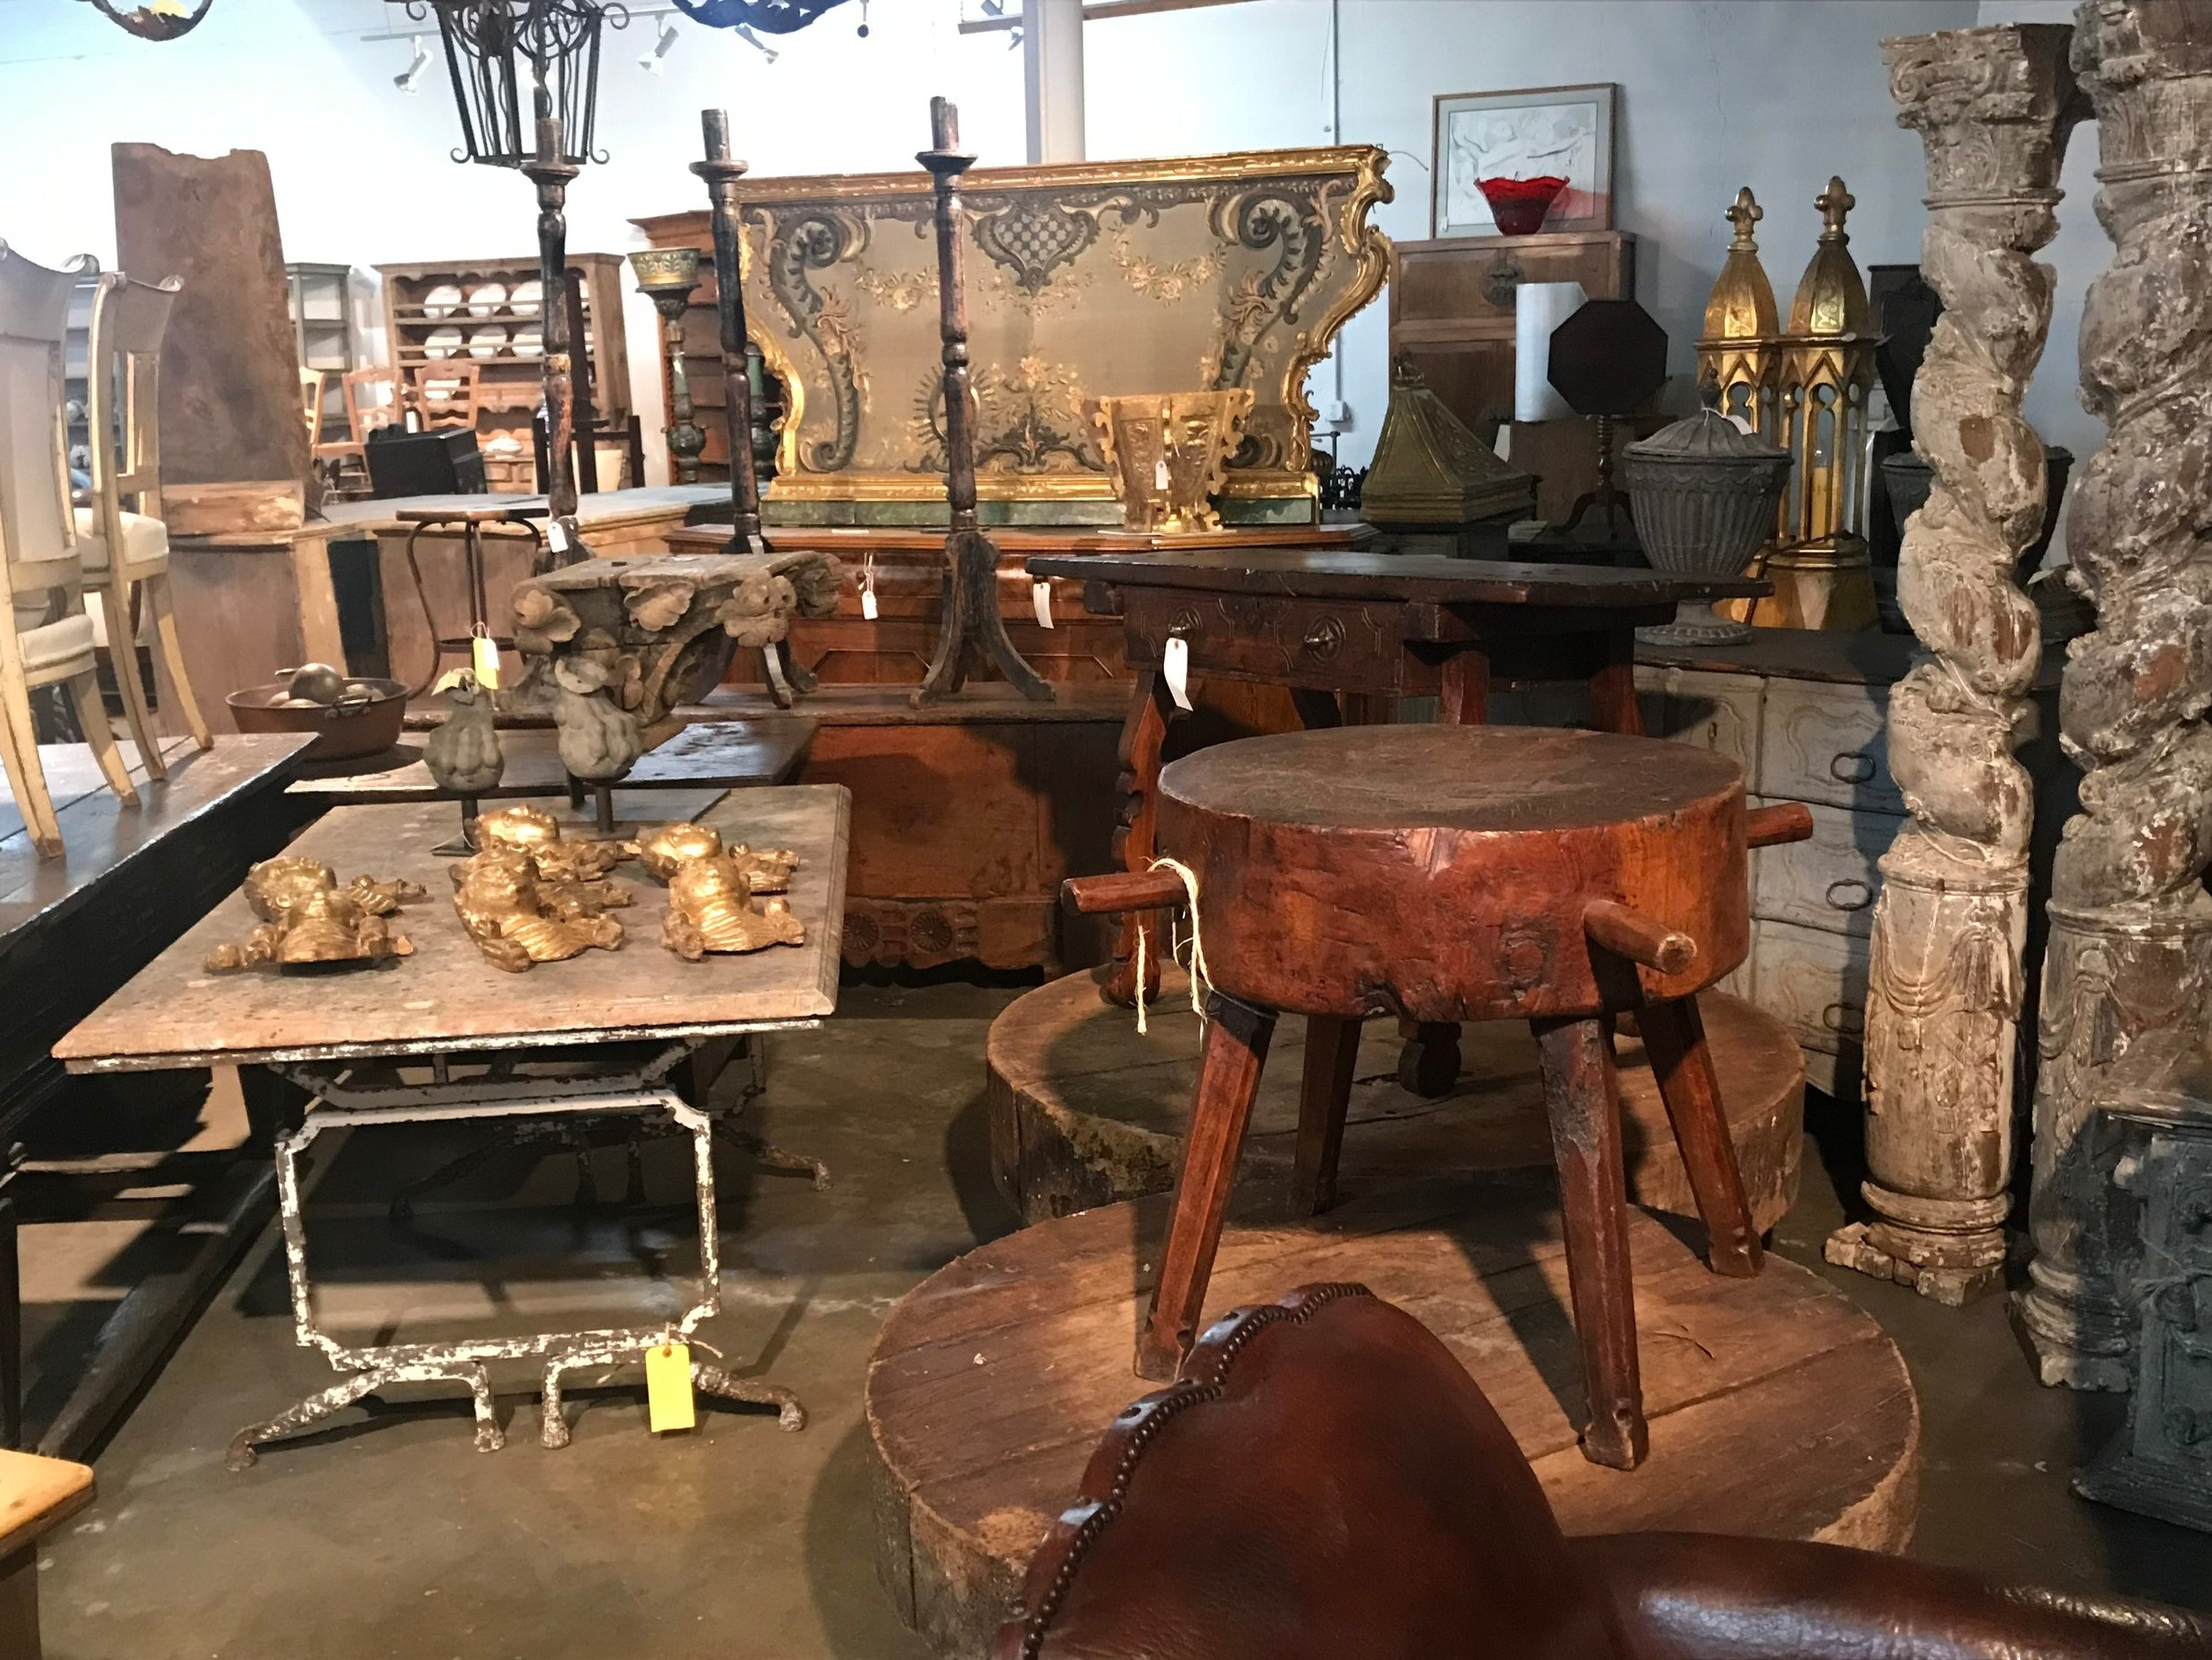 17th century Portuguese Solomonic columns, 18th century wine presses from Provence now as coffee tables, an 18th century Italian stump work embroidery altar facade, a 19th century marble top garden table from Provence and more. Photos courtesy of Provenance Antiques.